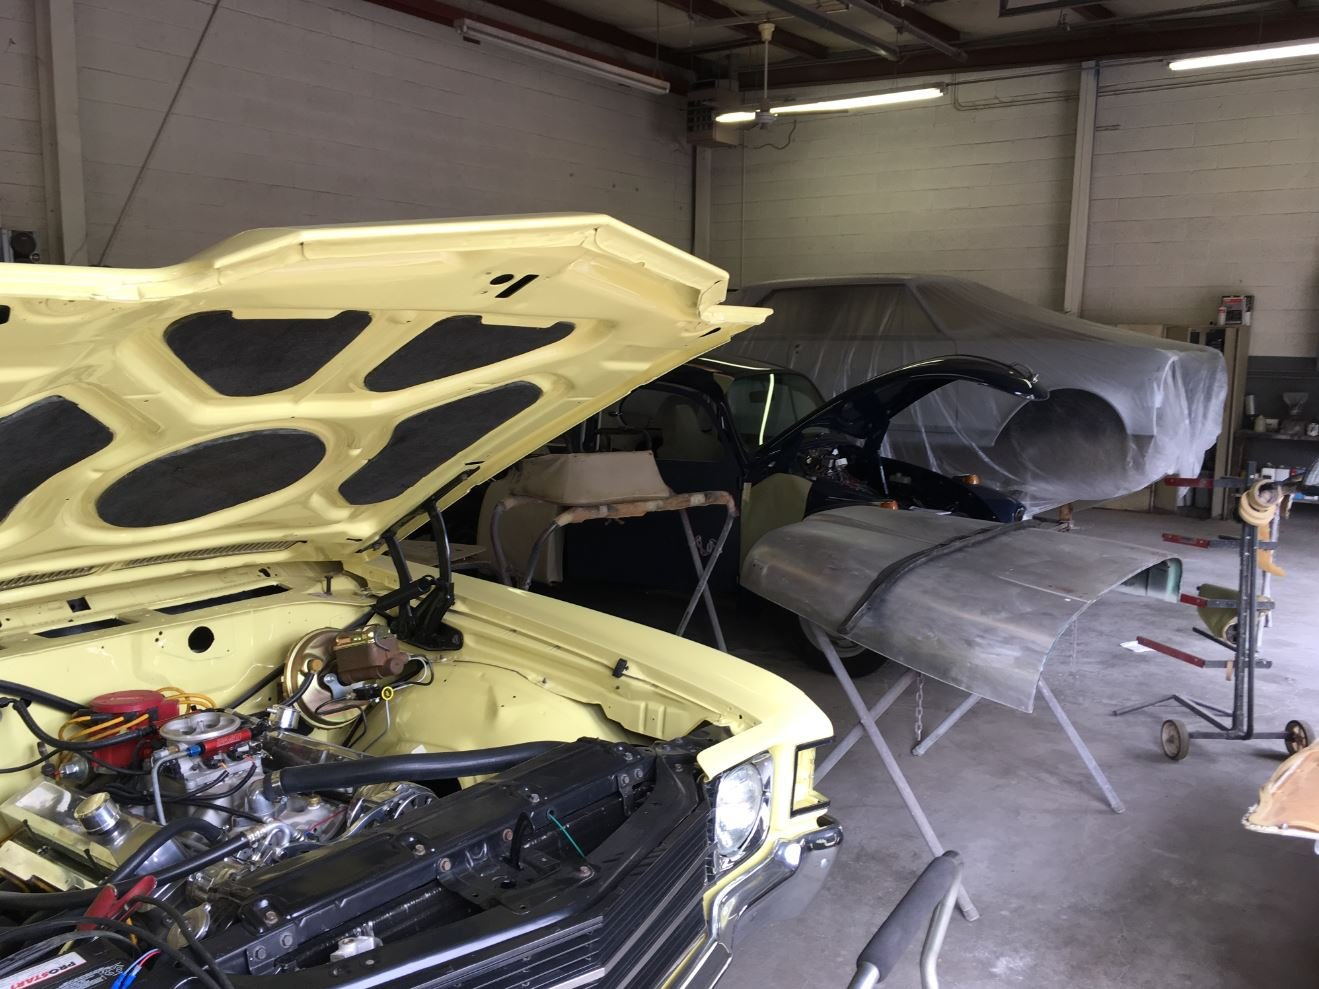 Restoring a classic car can be achievable with a little patience and know-how. (Source: CBS 5 News)